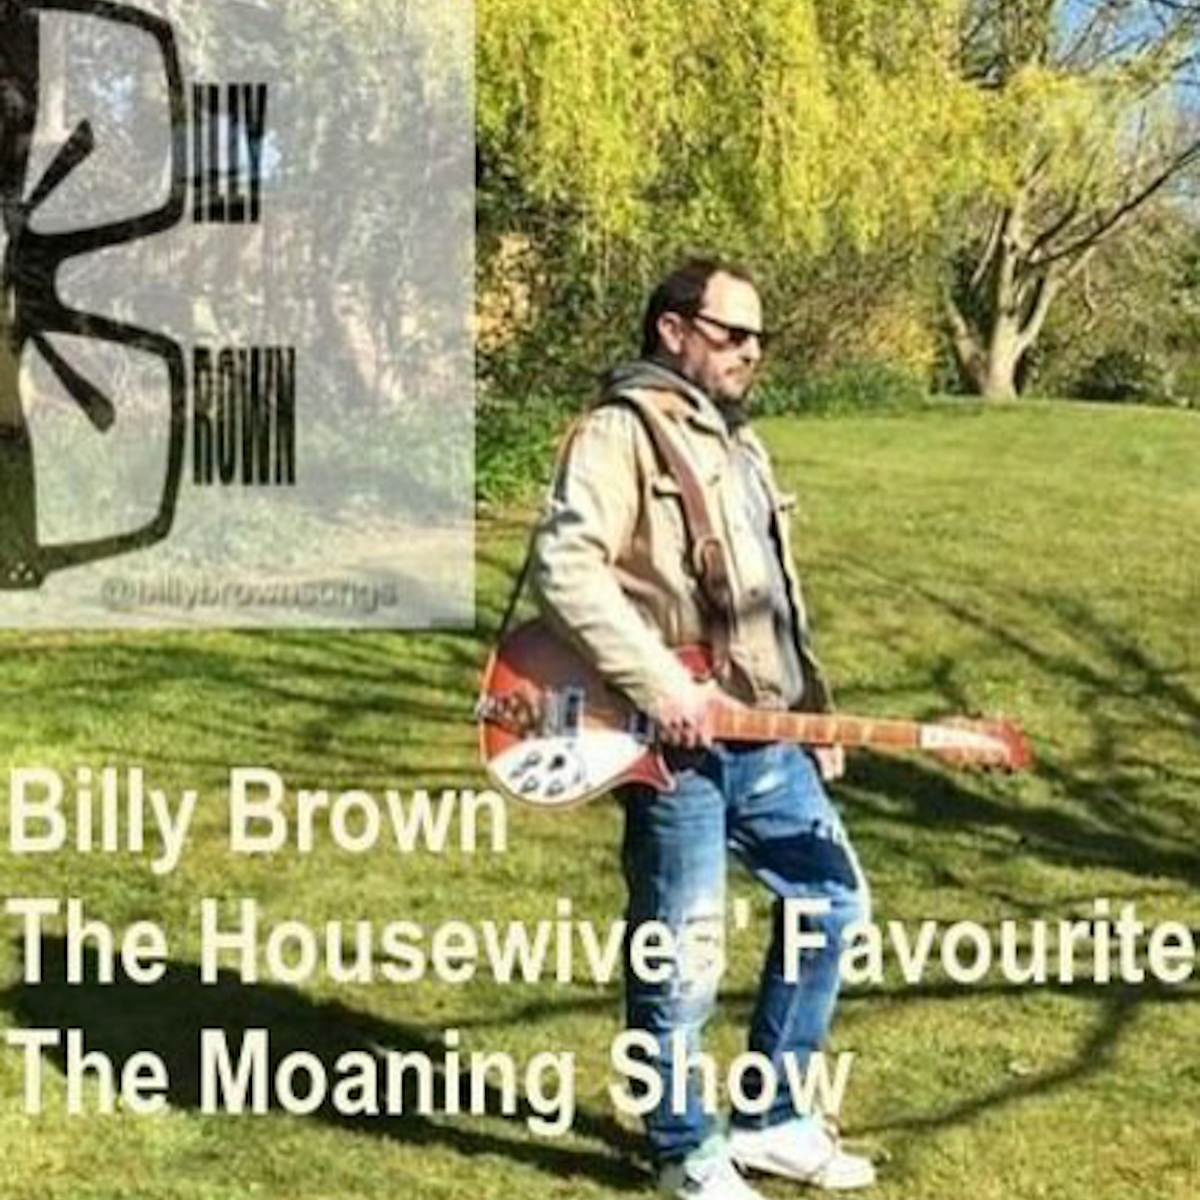 Billy Brown, housewives favourite – THe moaning Show